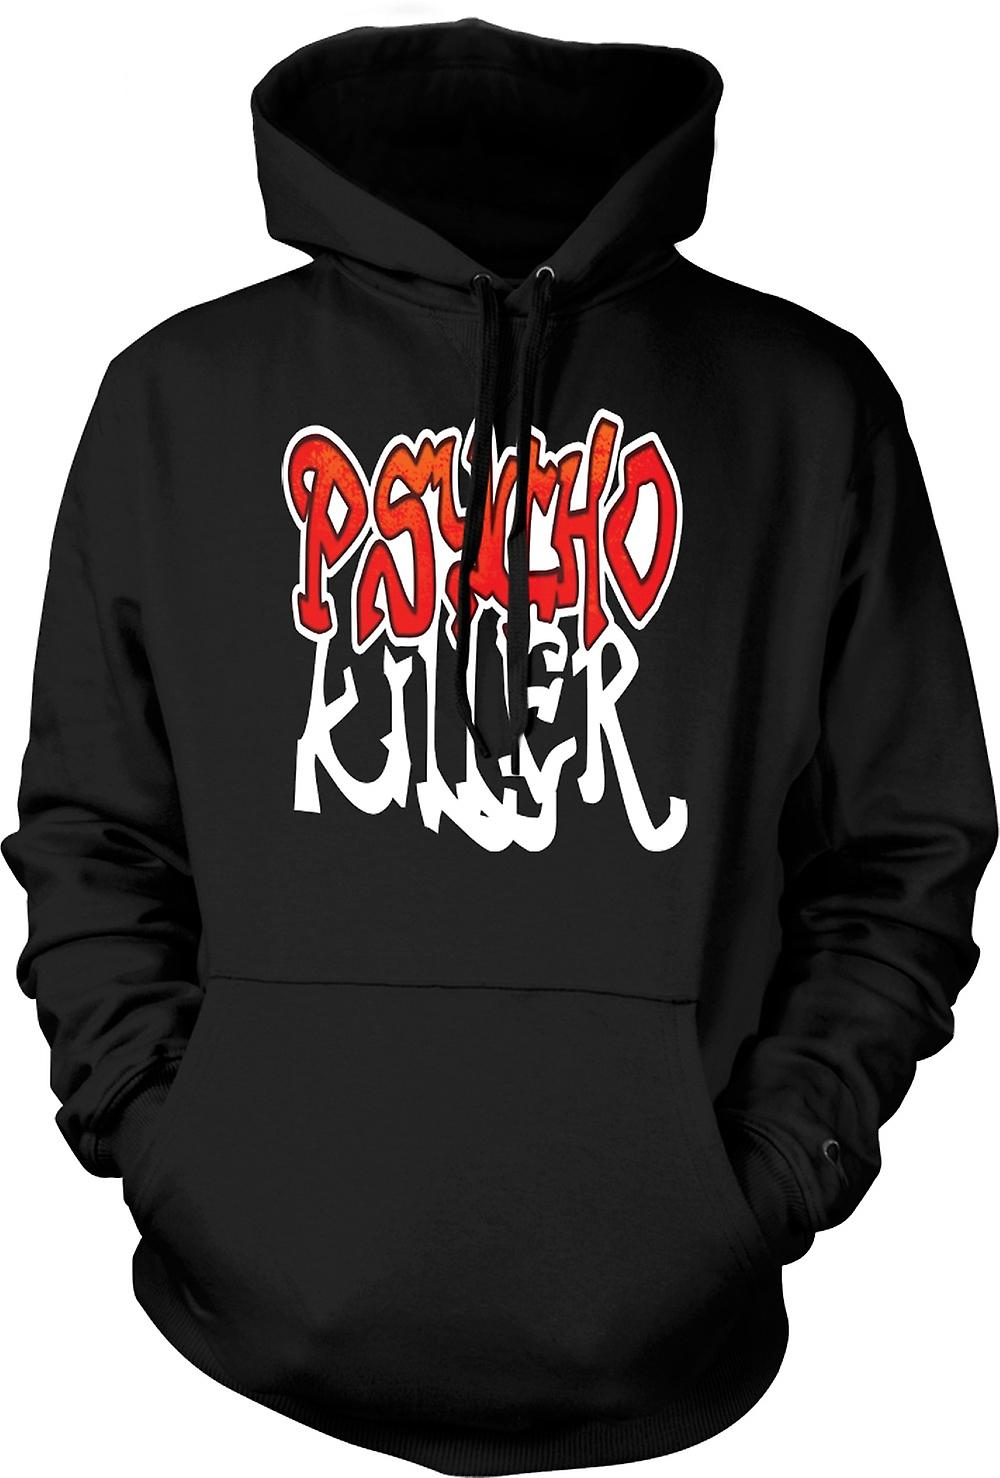 Mens Hoodie - Psycho Killer - Quote